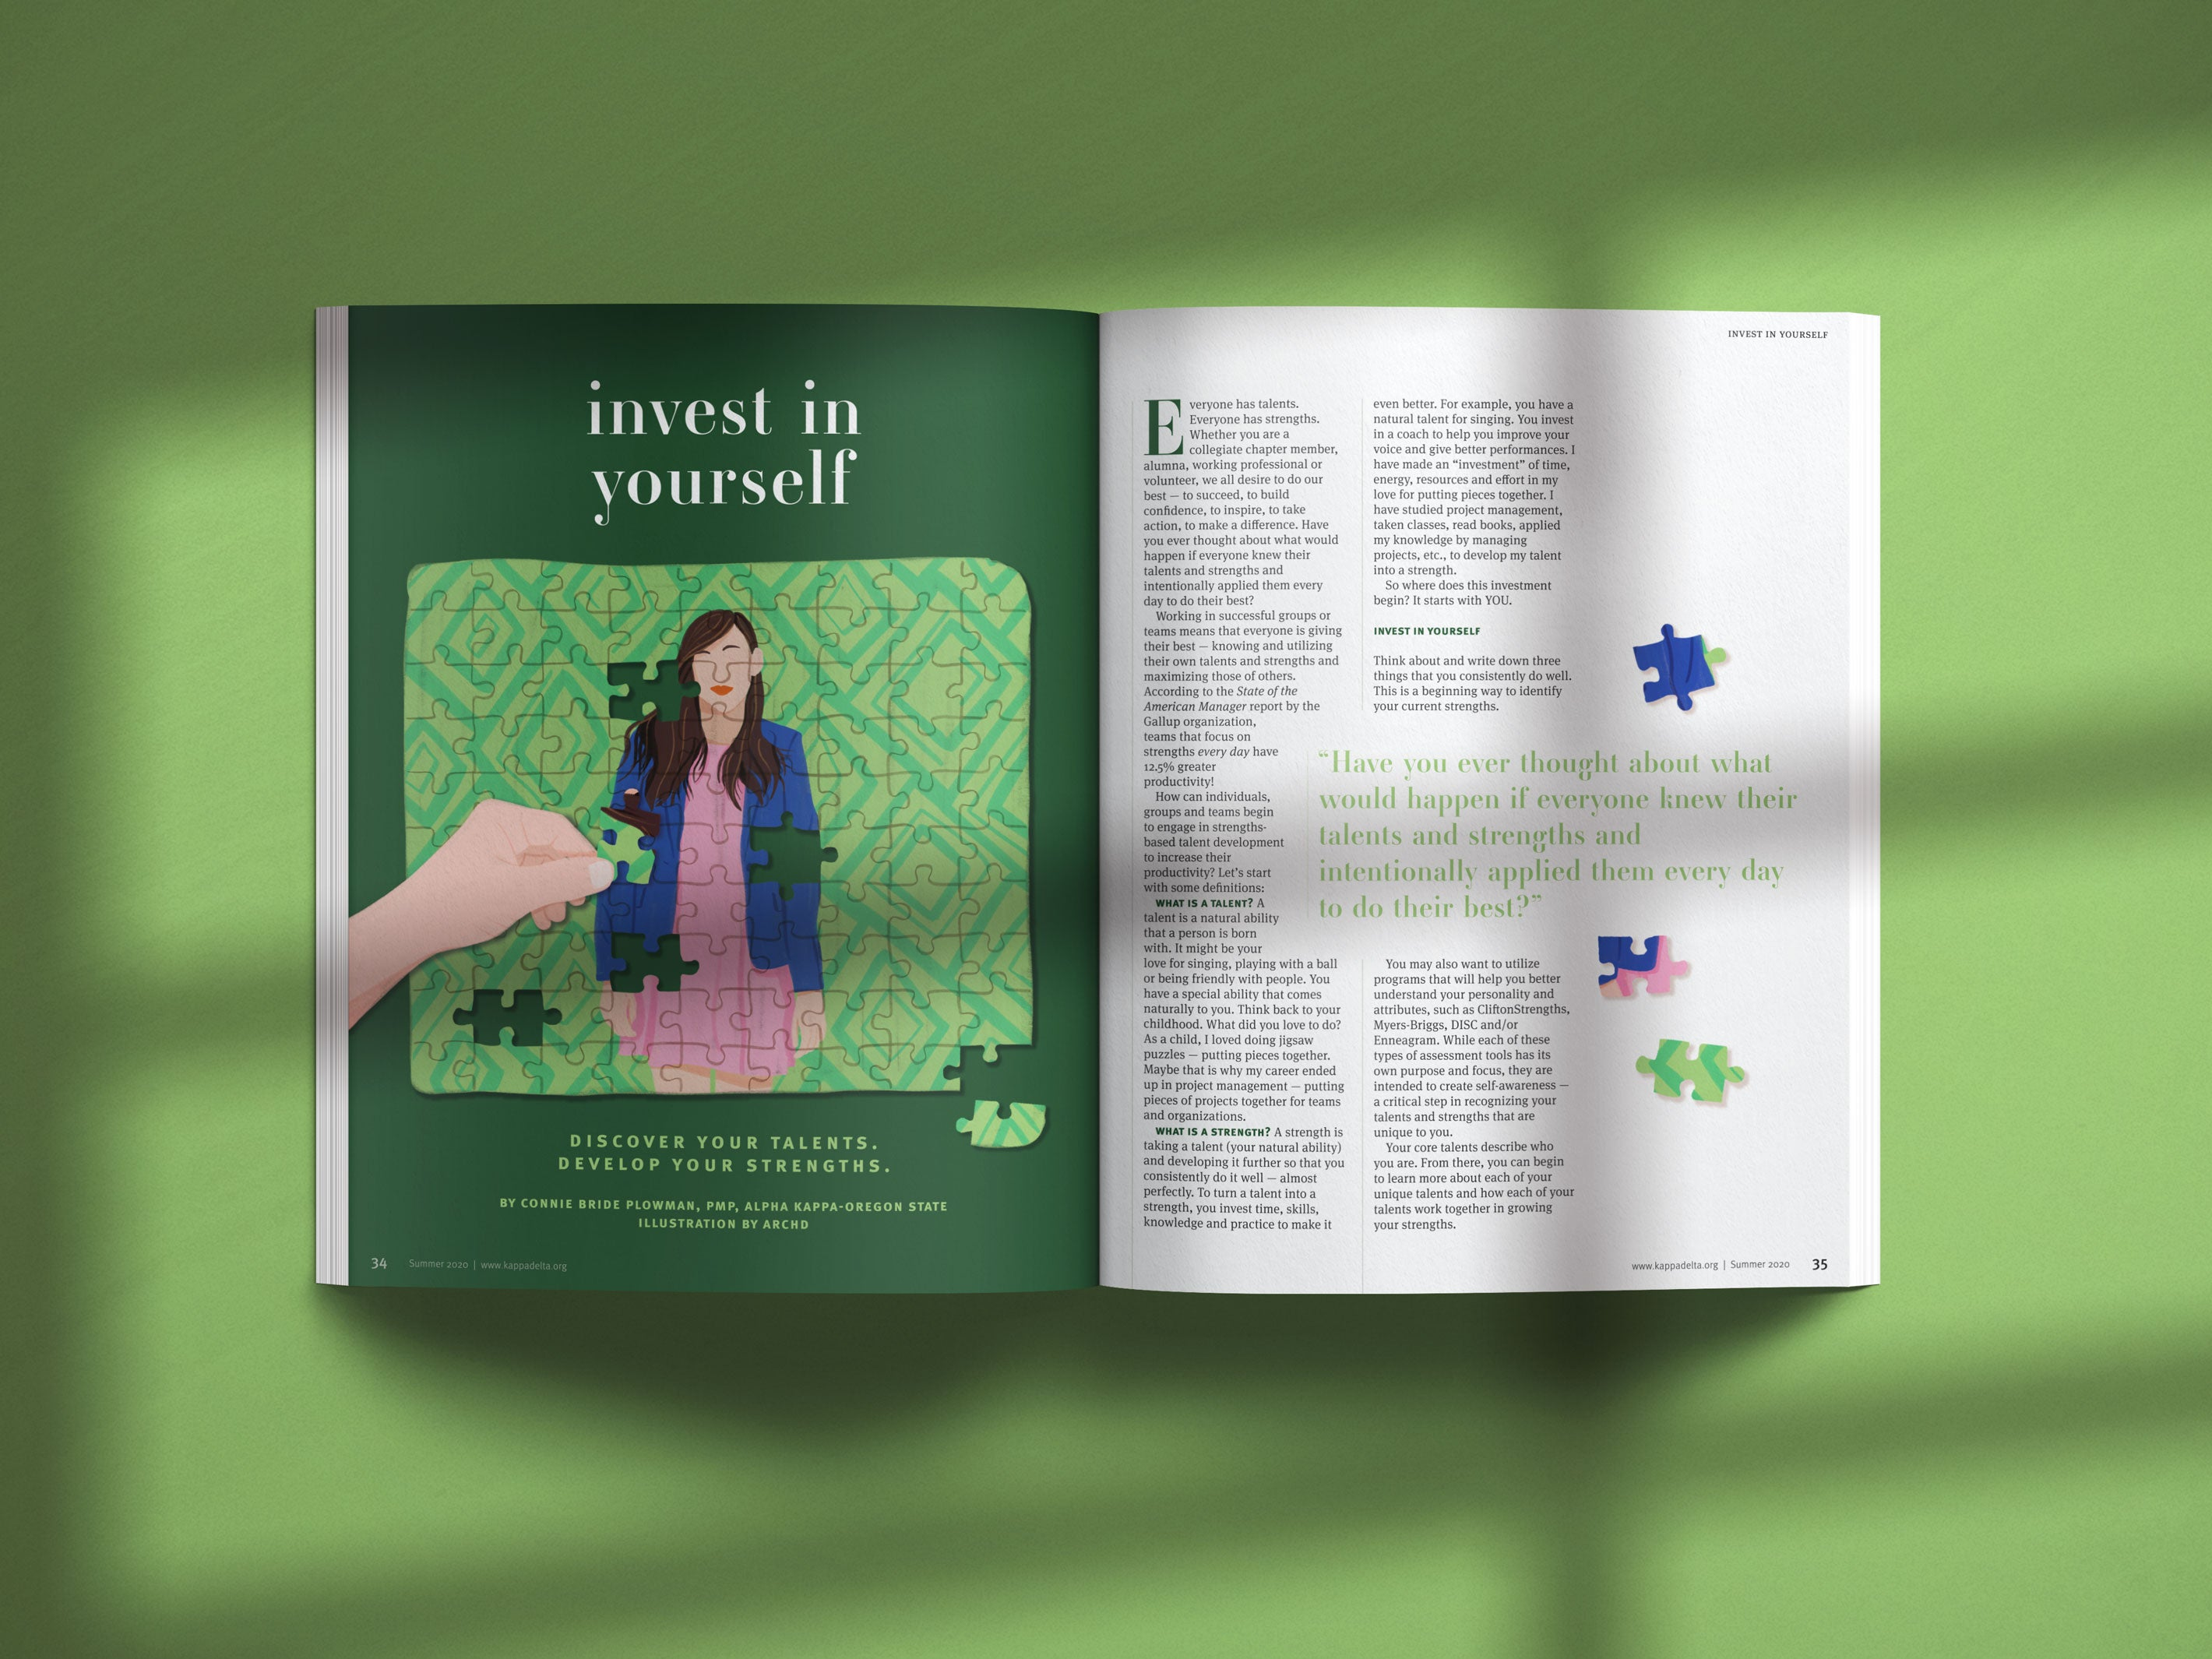 invest in yourself woman puzzle piece editorial illustration magazine design